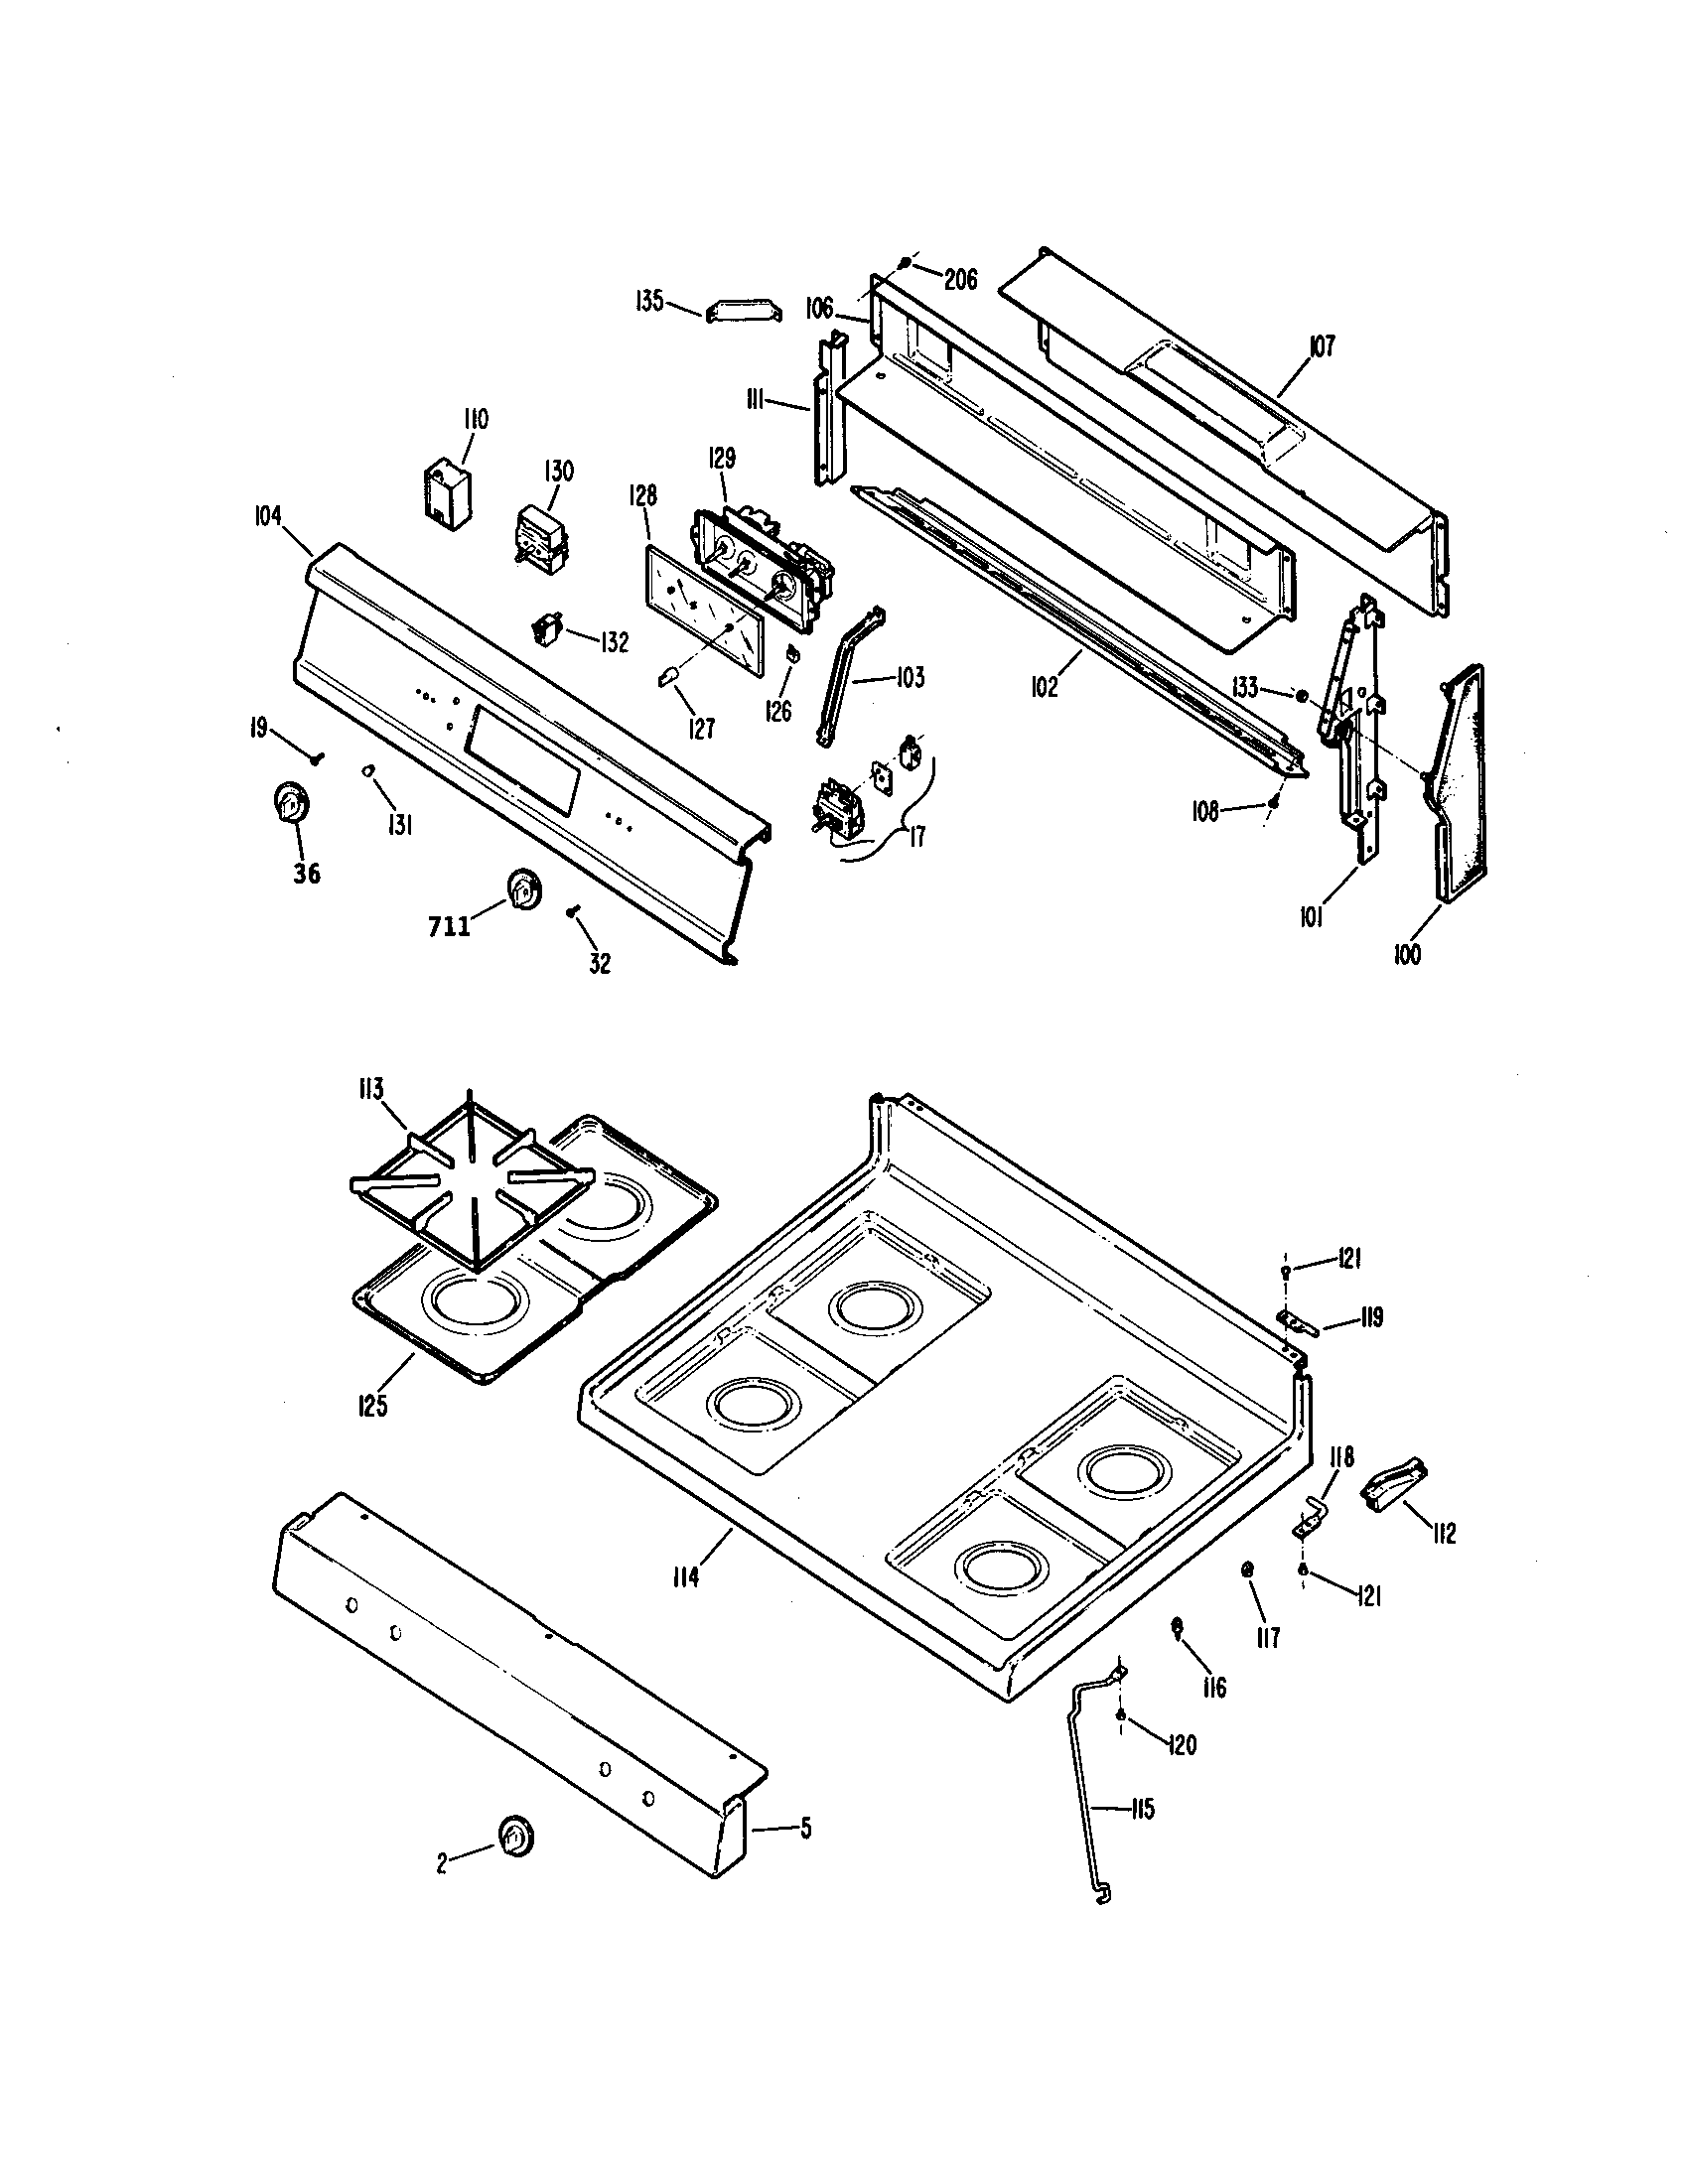 CONTROL PANEL Diagram & Parts List for Model 3627332892